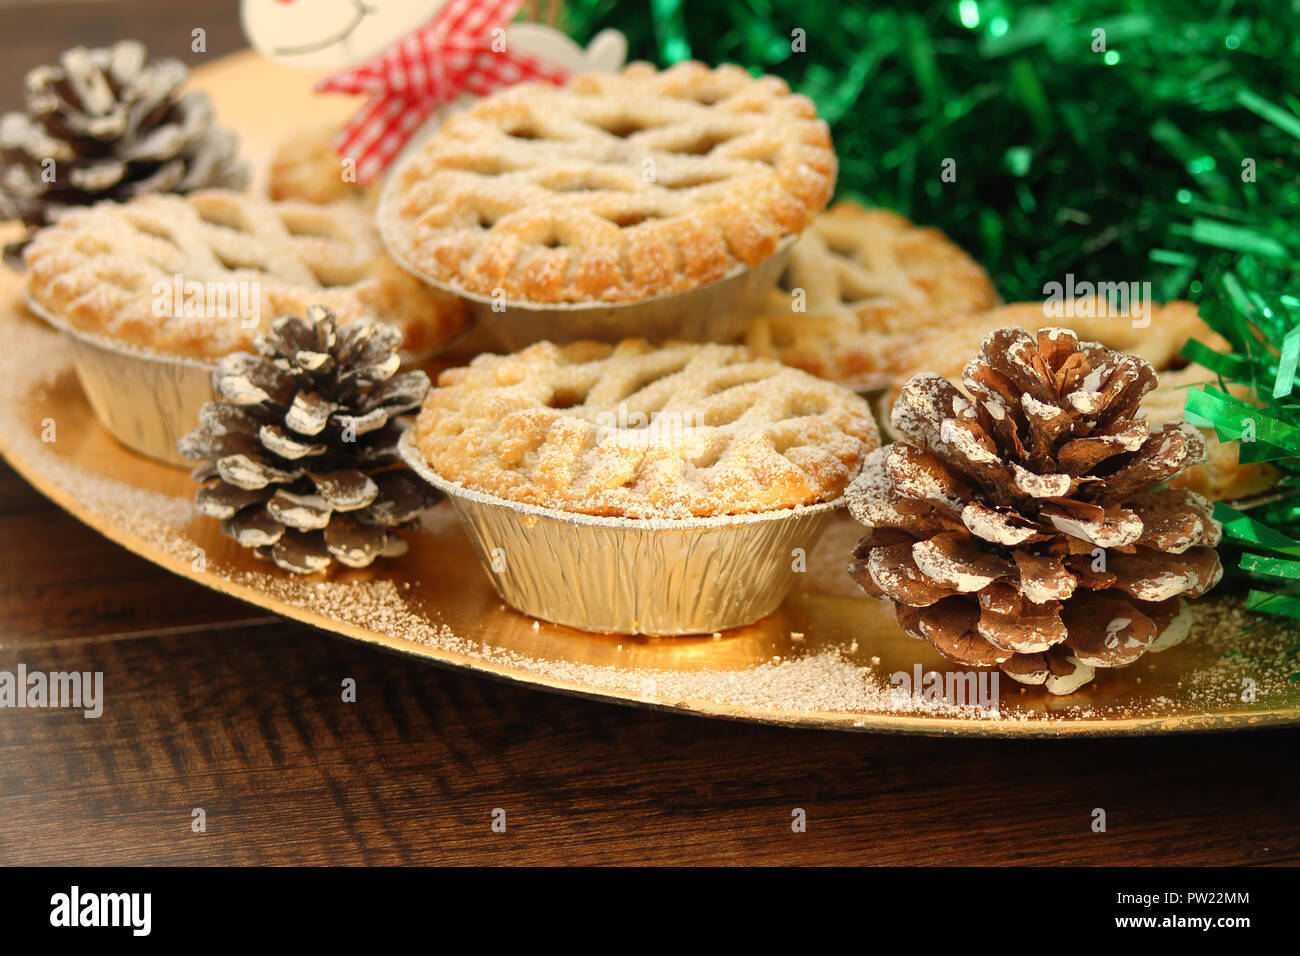 Christmas mince pies on a wooden background - Stock Image